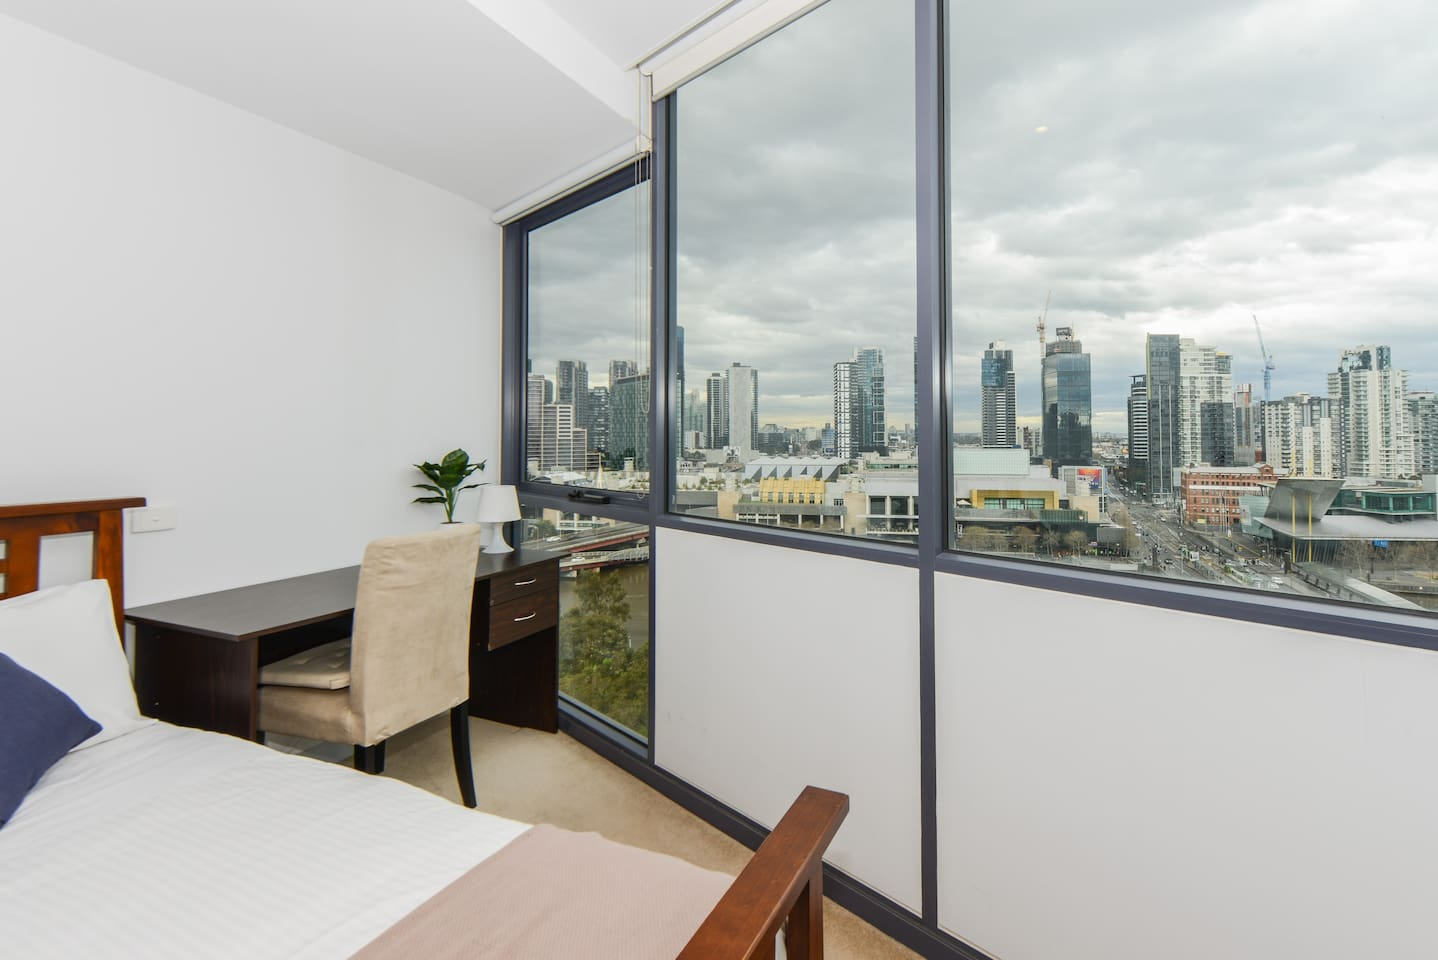 Master bedroom with view of the Yarra